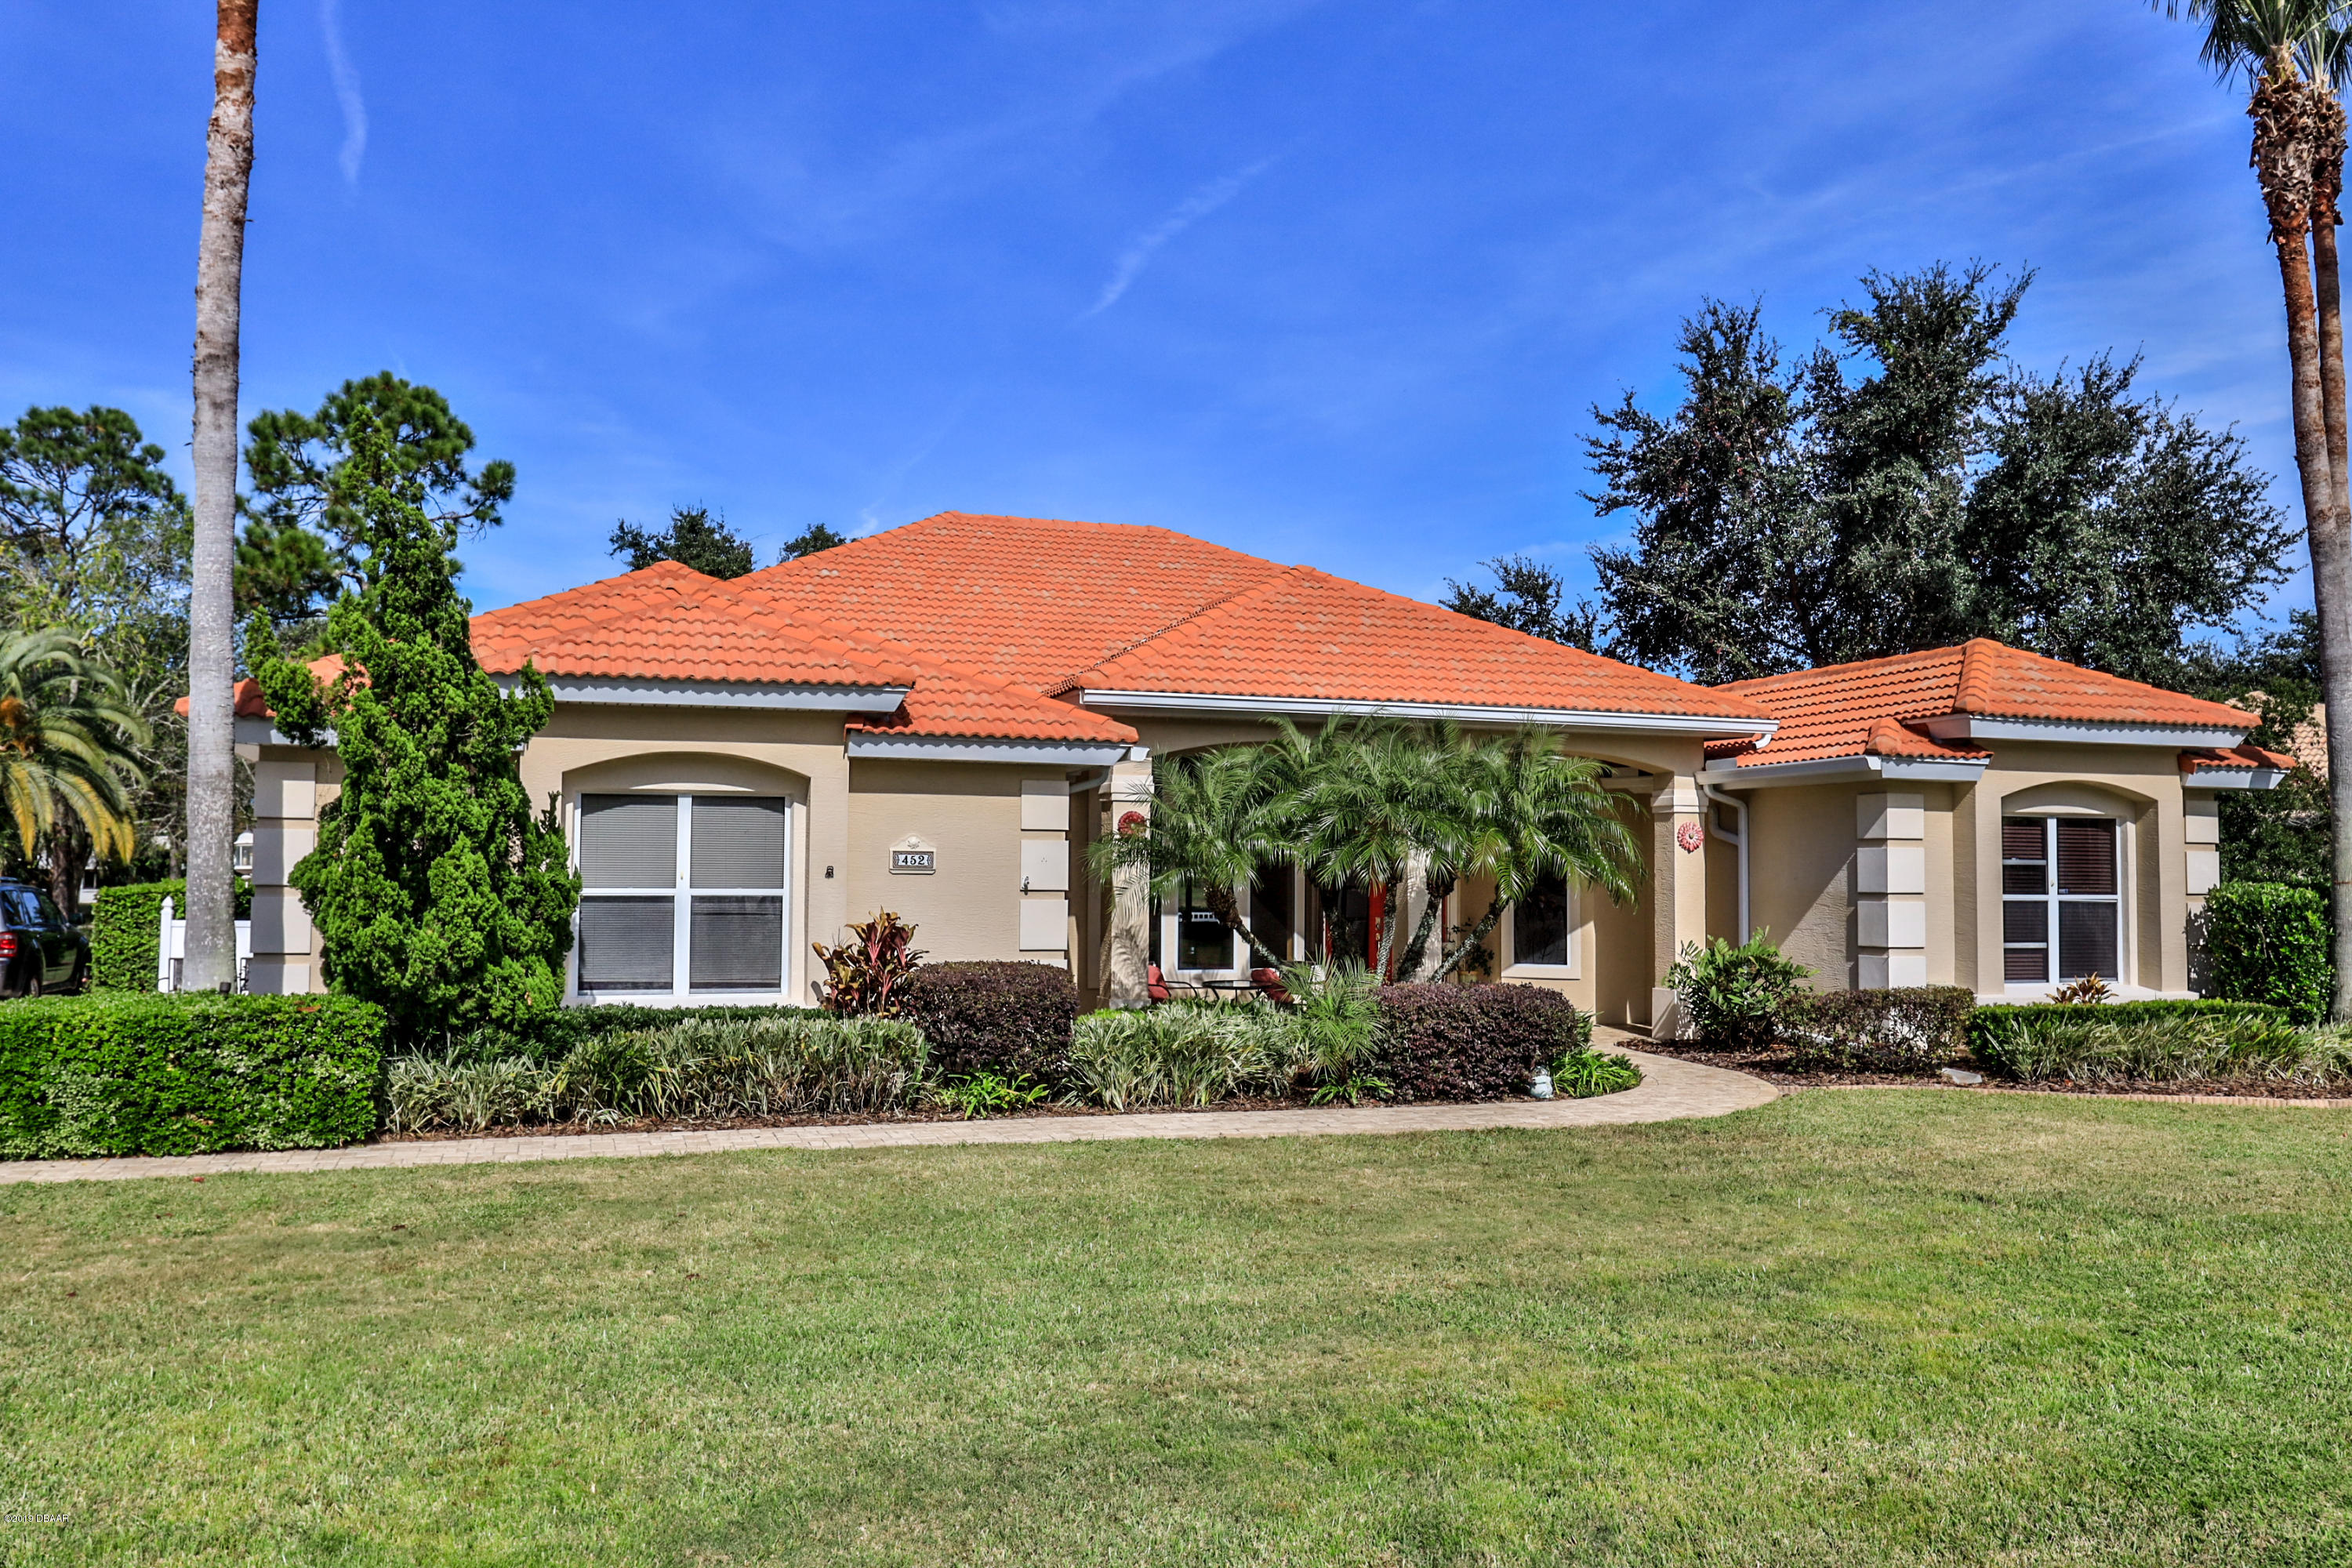 Photo of 452 Sea Duck Drive, Daytona Beach, FL 32119